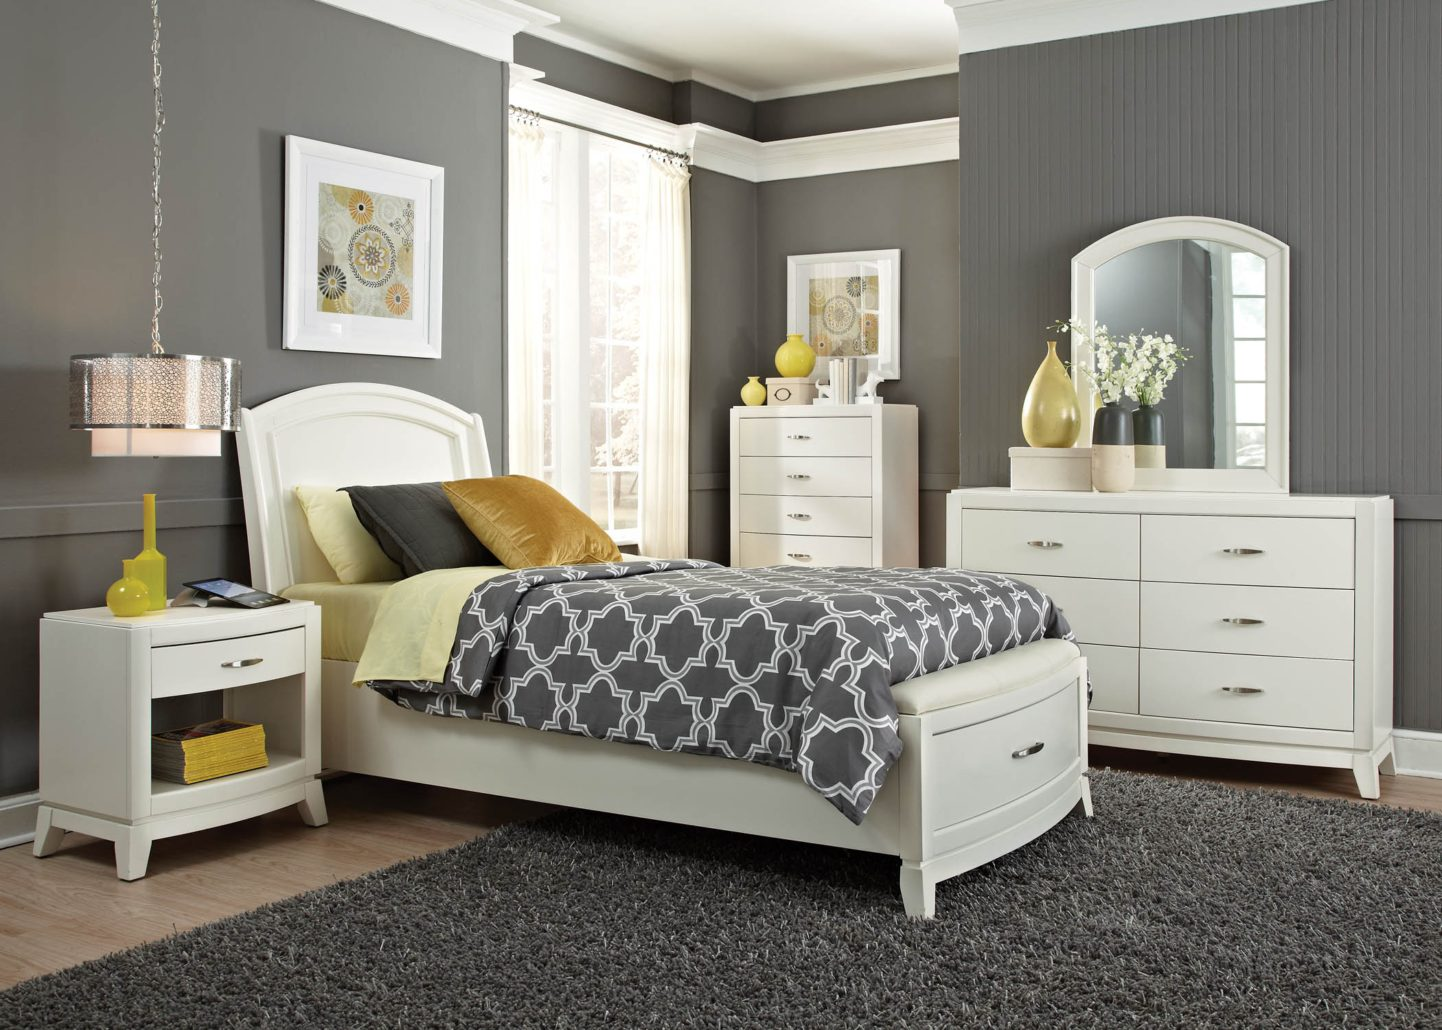 Youth Bedroom Unique Furniture Part 2